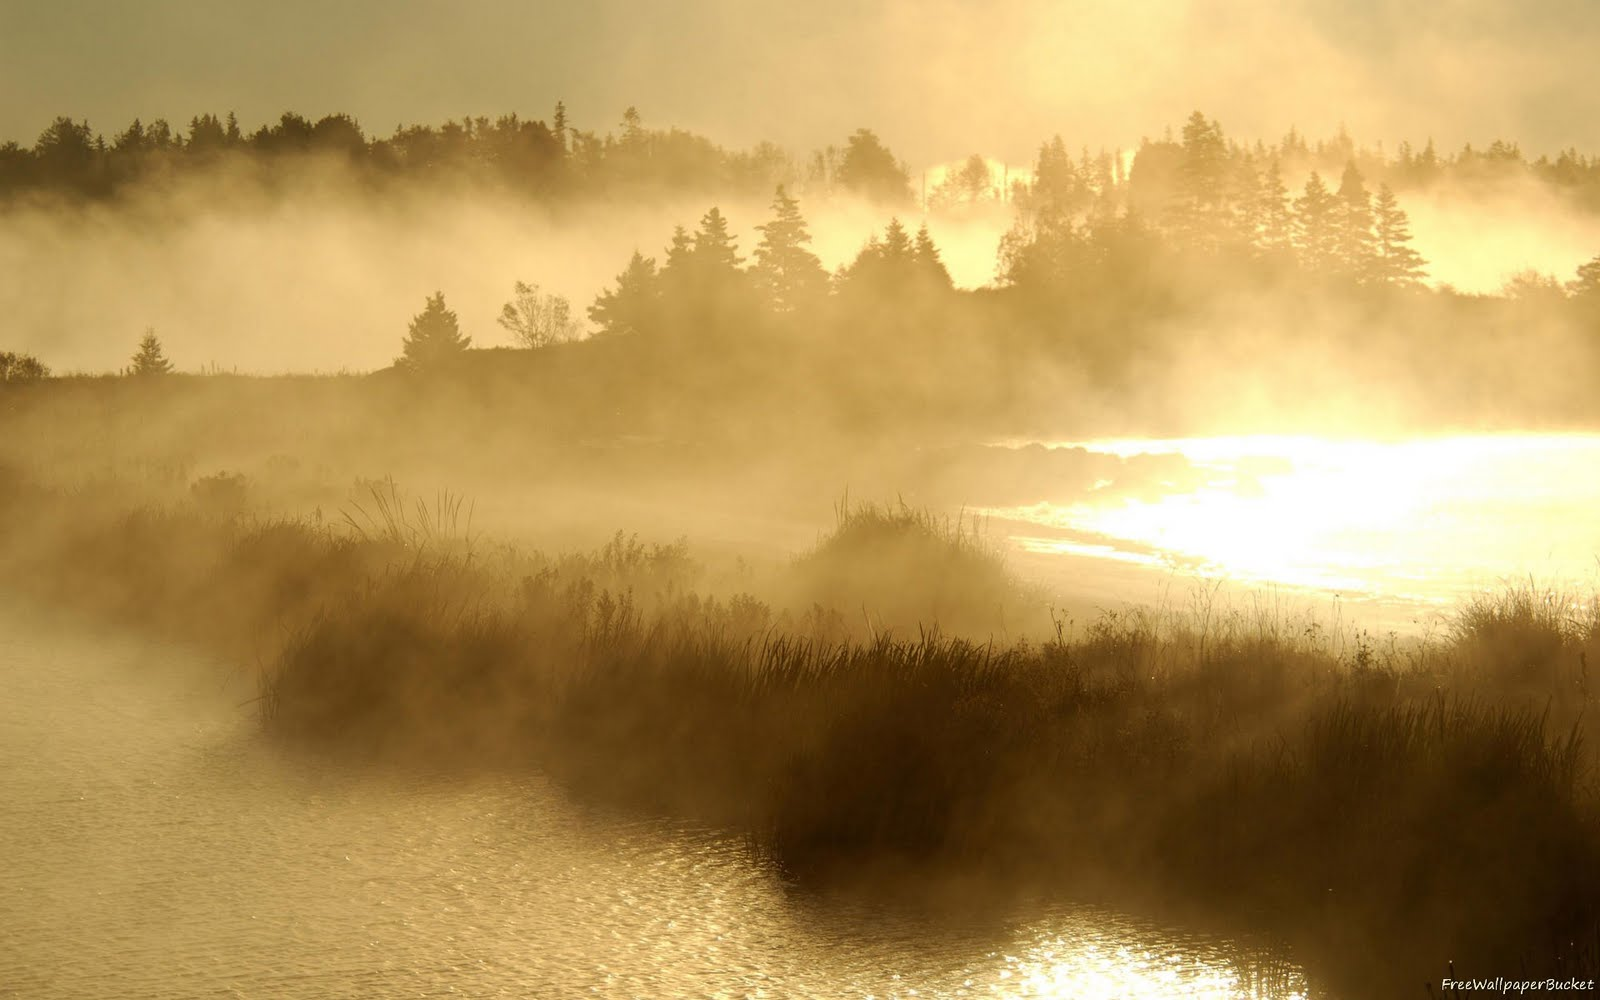 http://2.bp.blogspot.com/-SEdyiCQVSjk/TbOYJuu4B-I/AAAAAAAABqM/iBmVYkPEZgc/s1600/Sea-Sunset-Fog-River-wallpapers00007.jpg